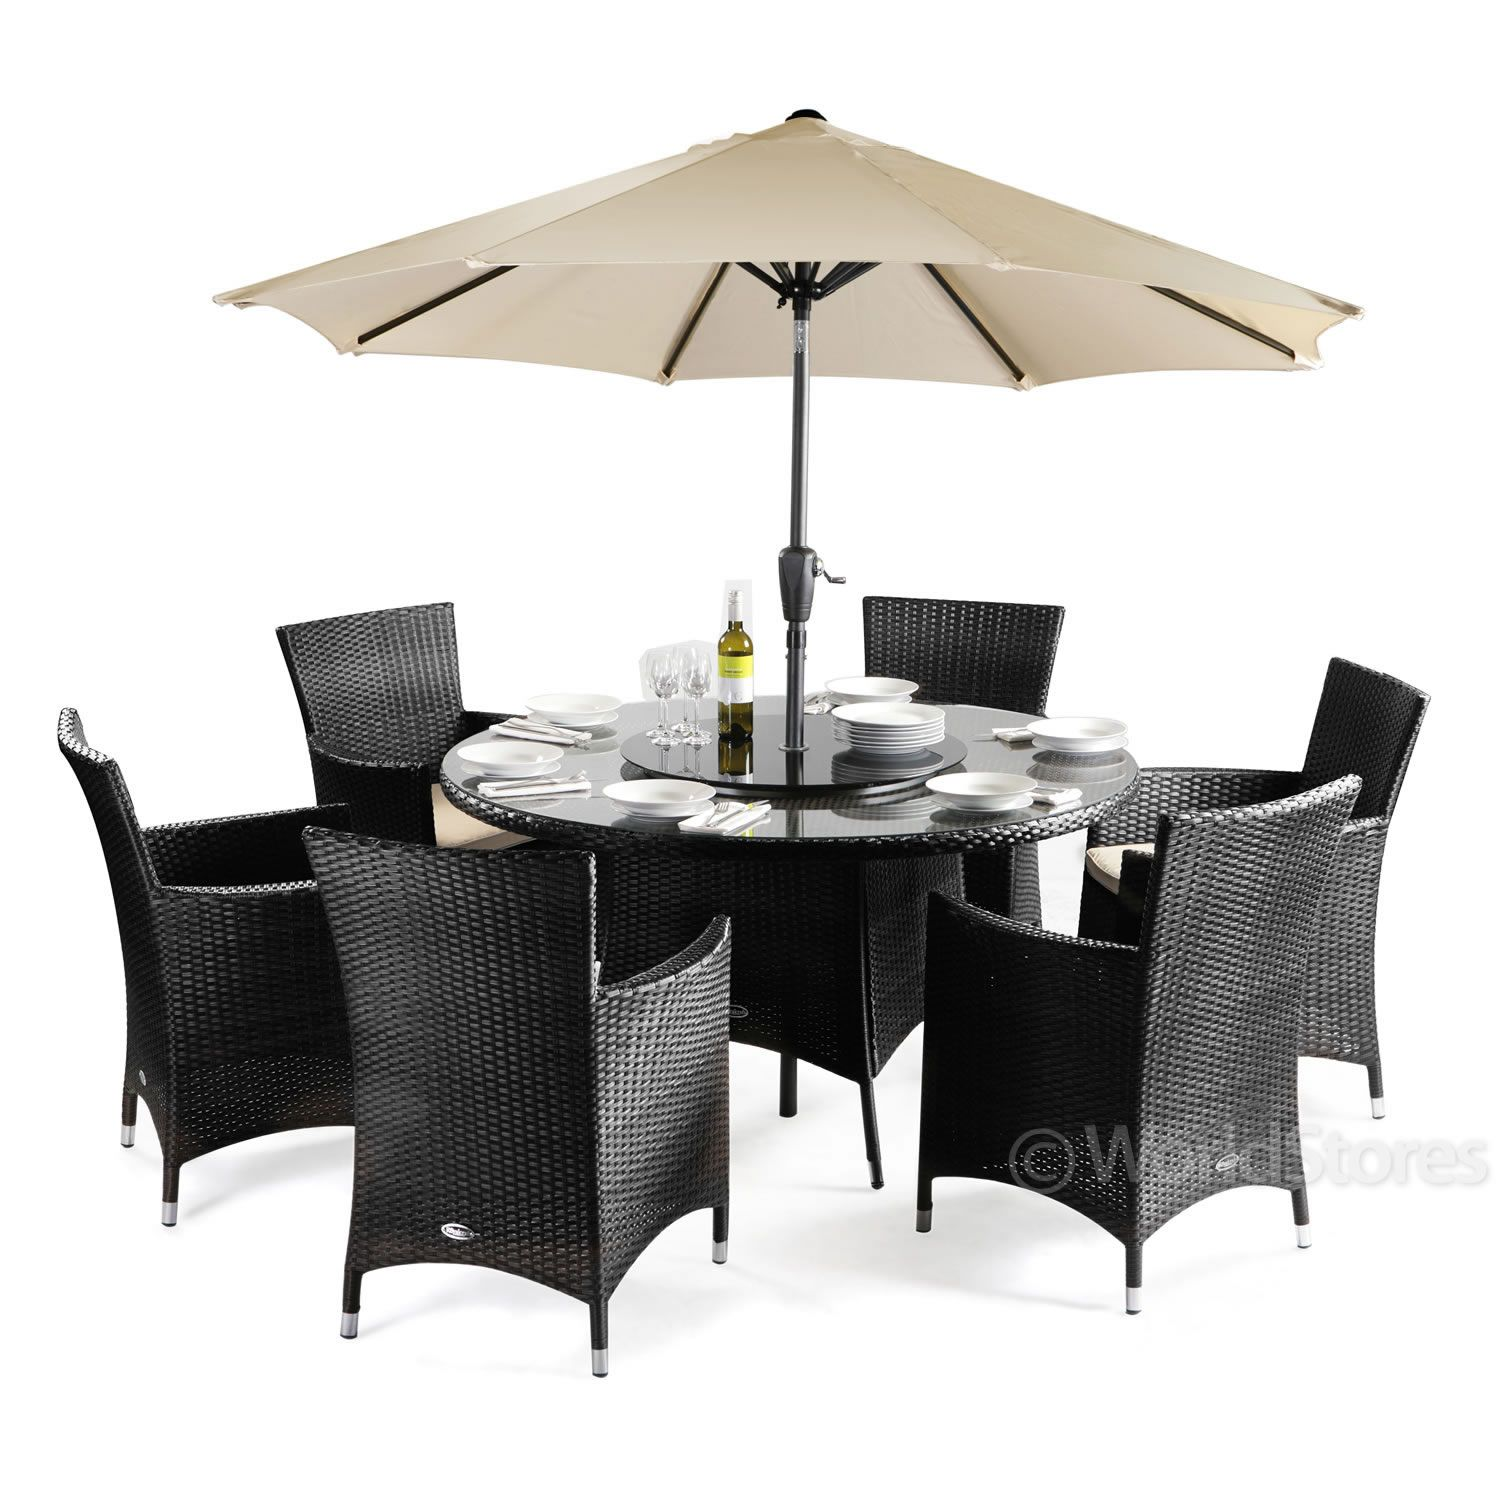 rattan round 6 chairs patio furniture set - Garden Furniture 6 Seats